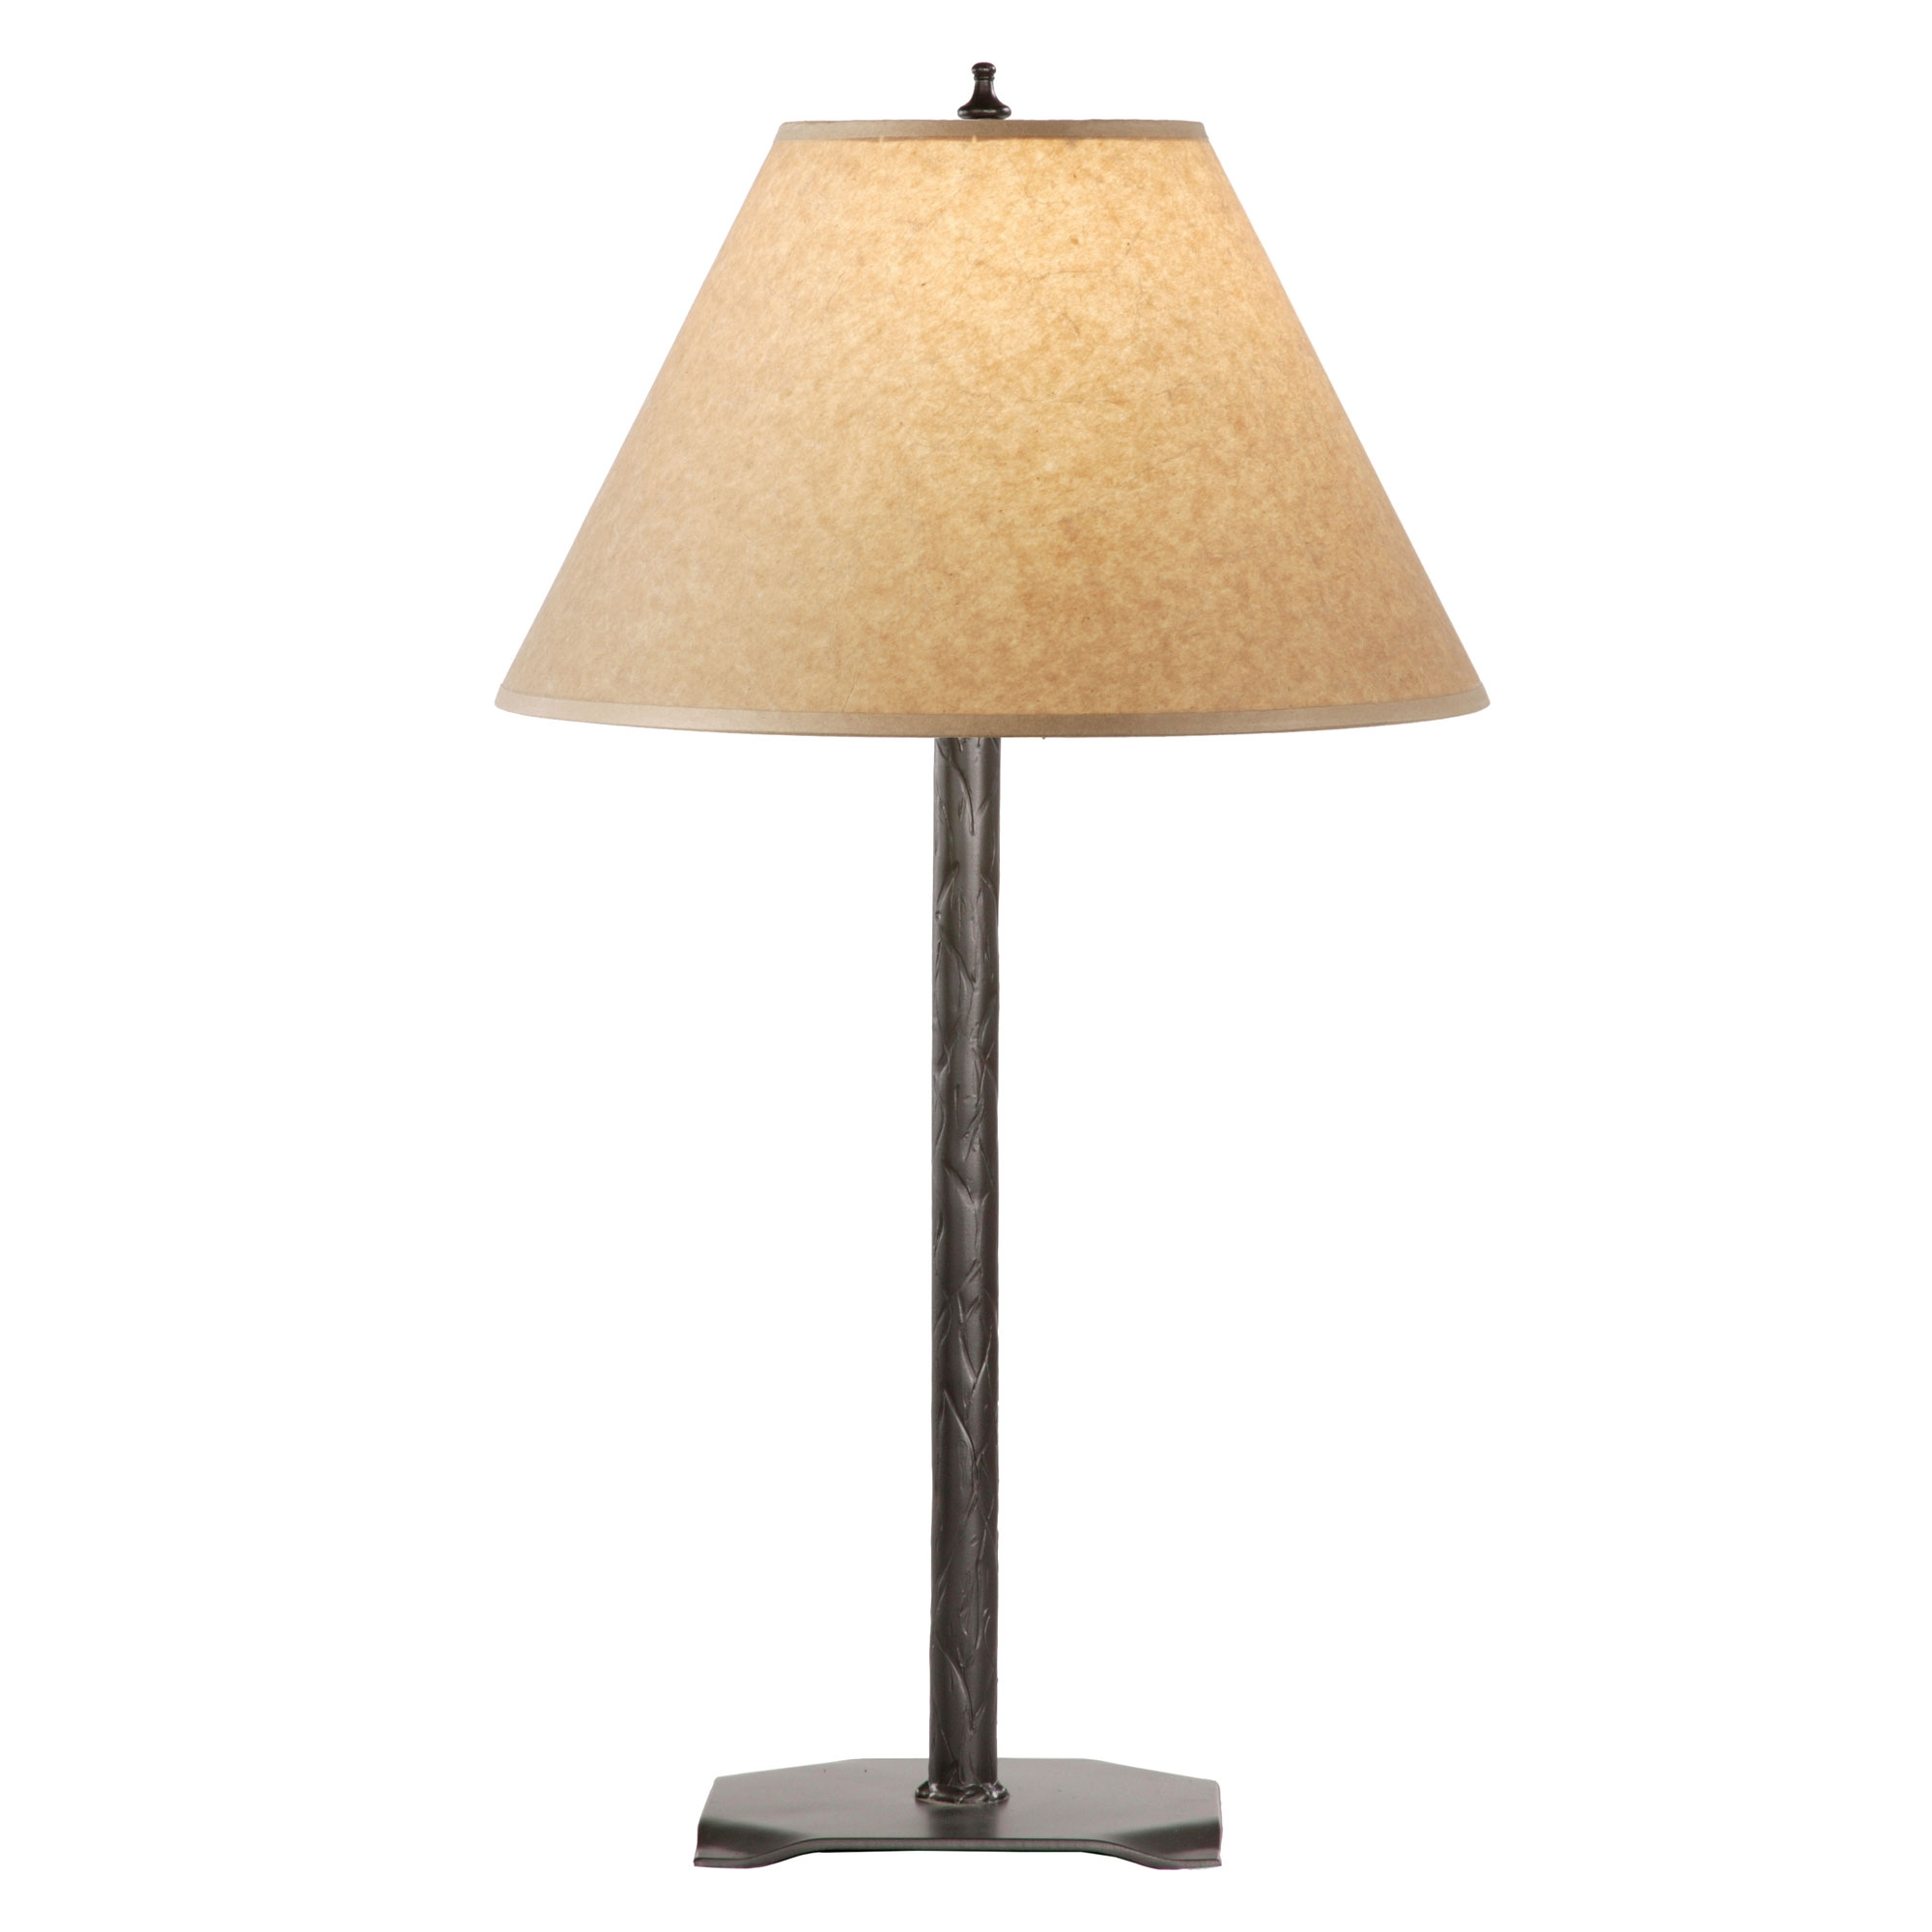 Gentil Stick Table Lamp